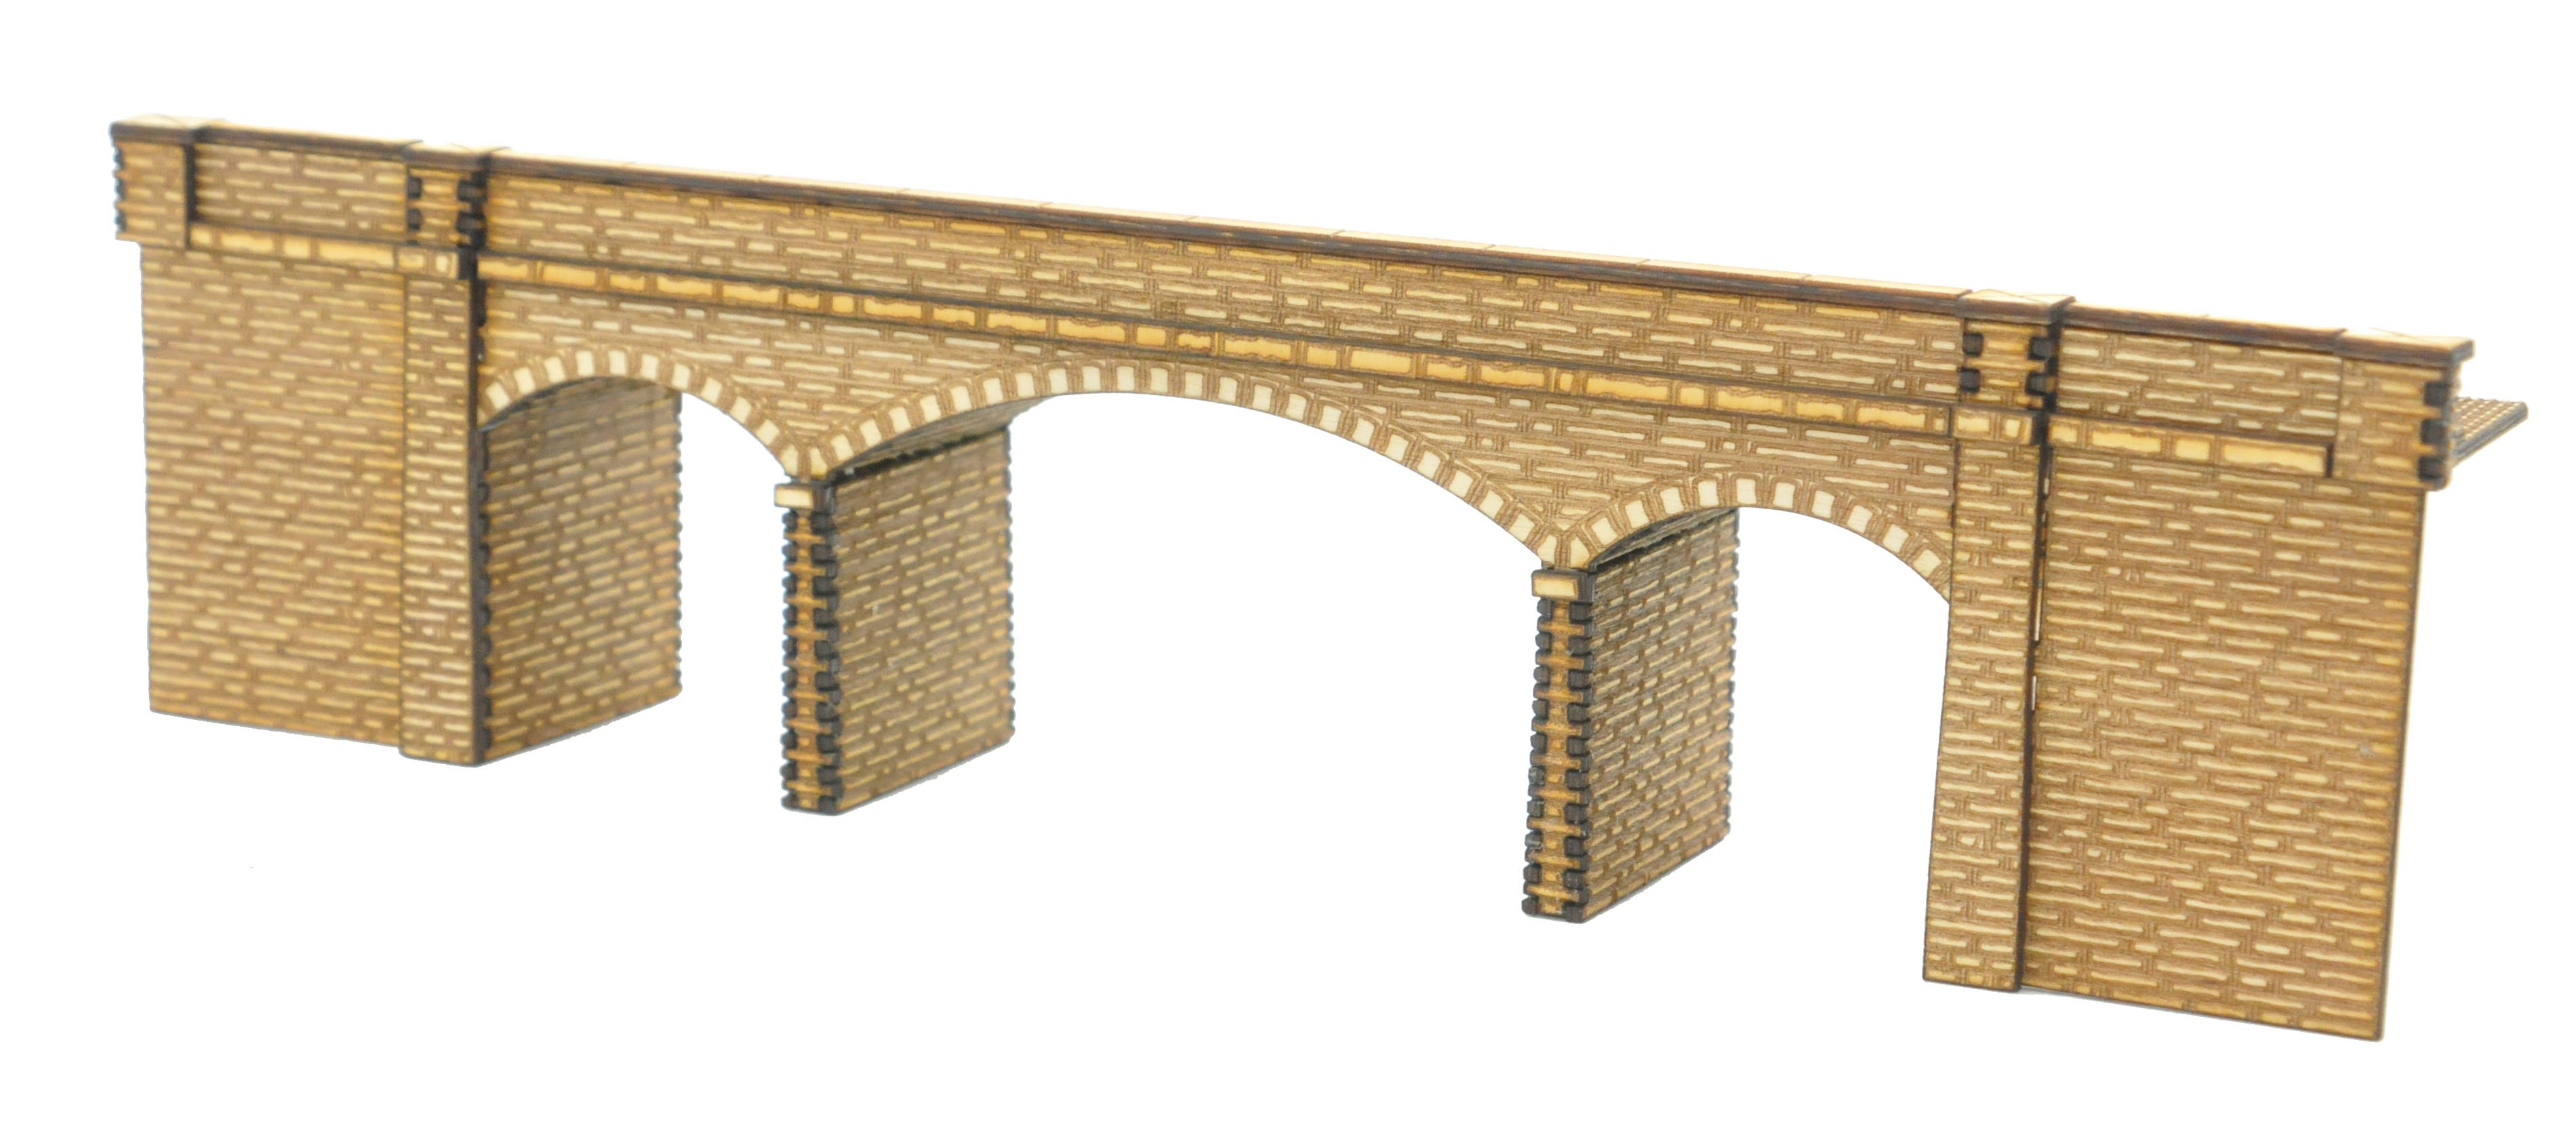 N-BR008 ''Connors Bridge'' Low Relief Road over Rail Bridge N Gauge Laser Cut Kit